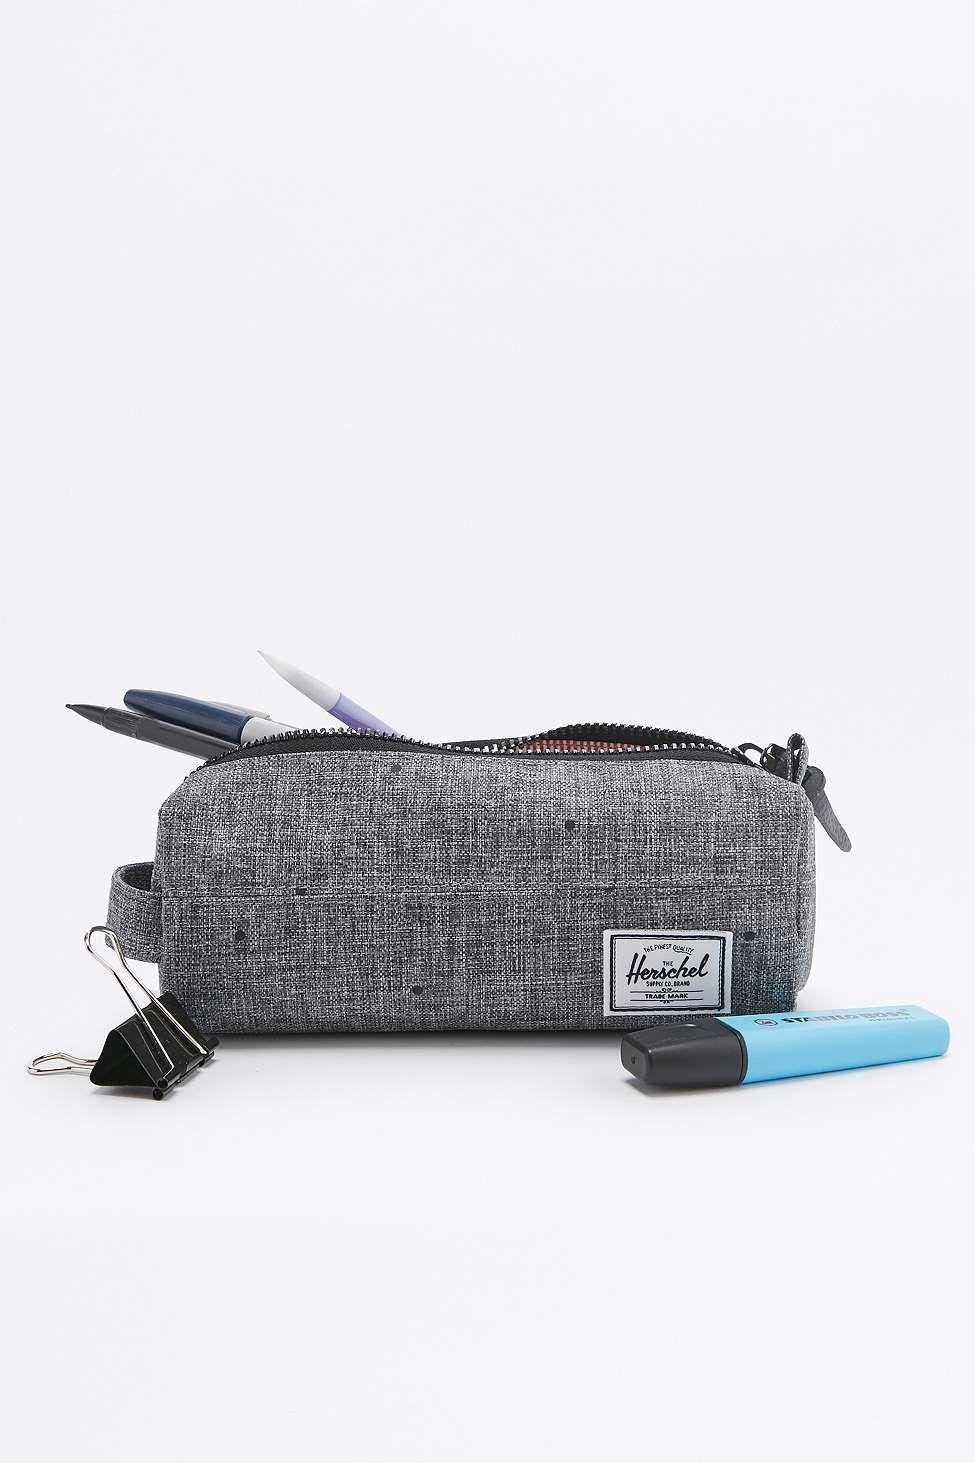 23e0699148bd Herschel Supply co. Settlement Scattered Raven Grey Pencil Case. Click for  more info and shop!